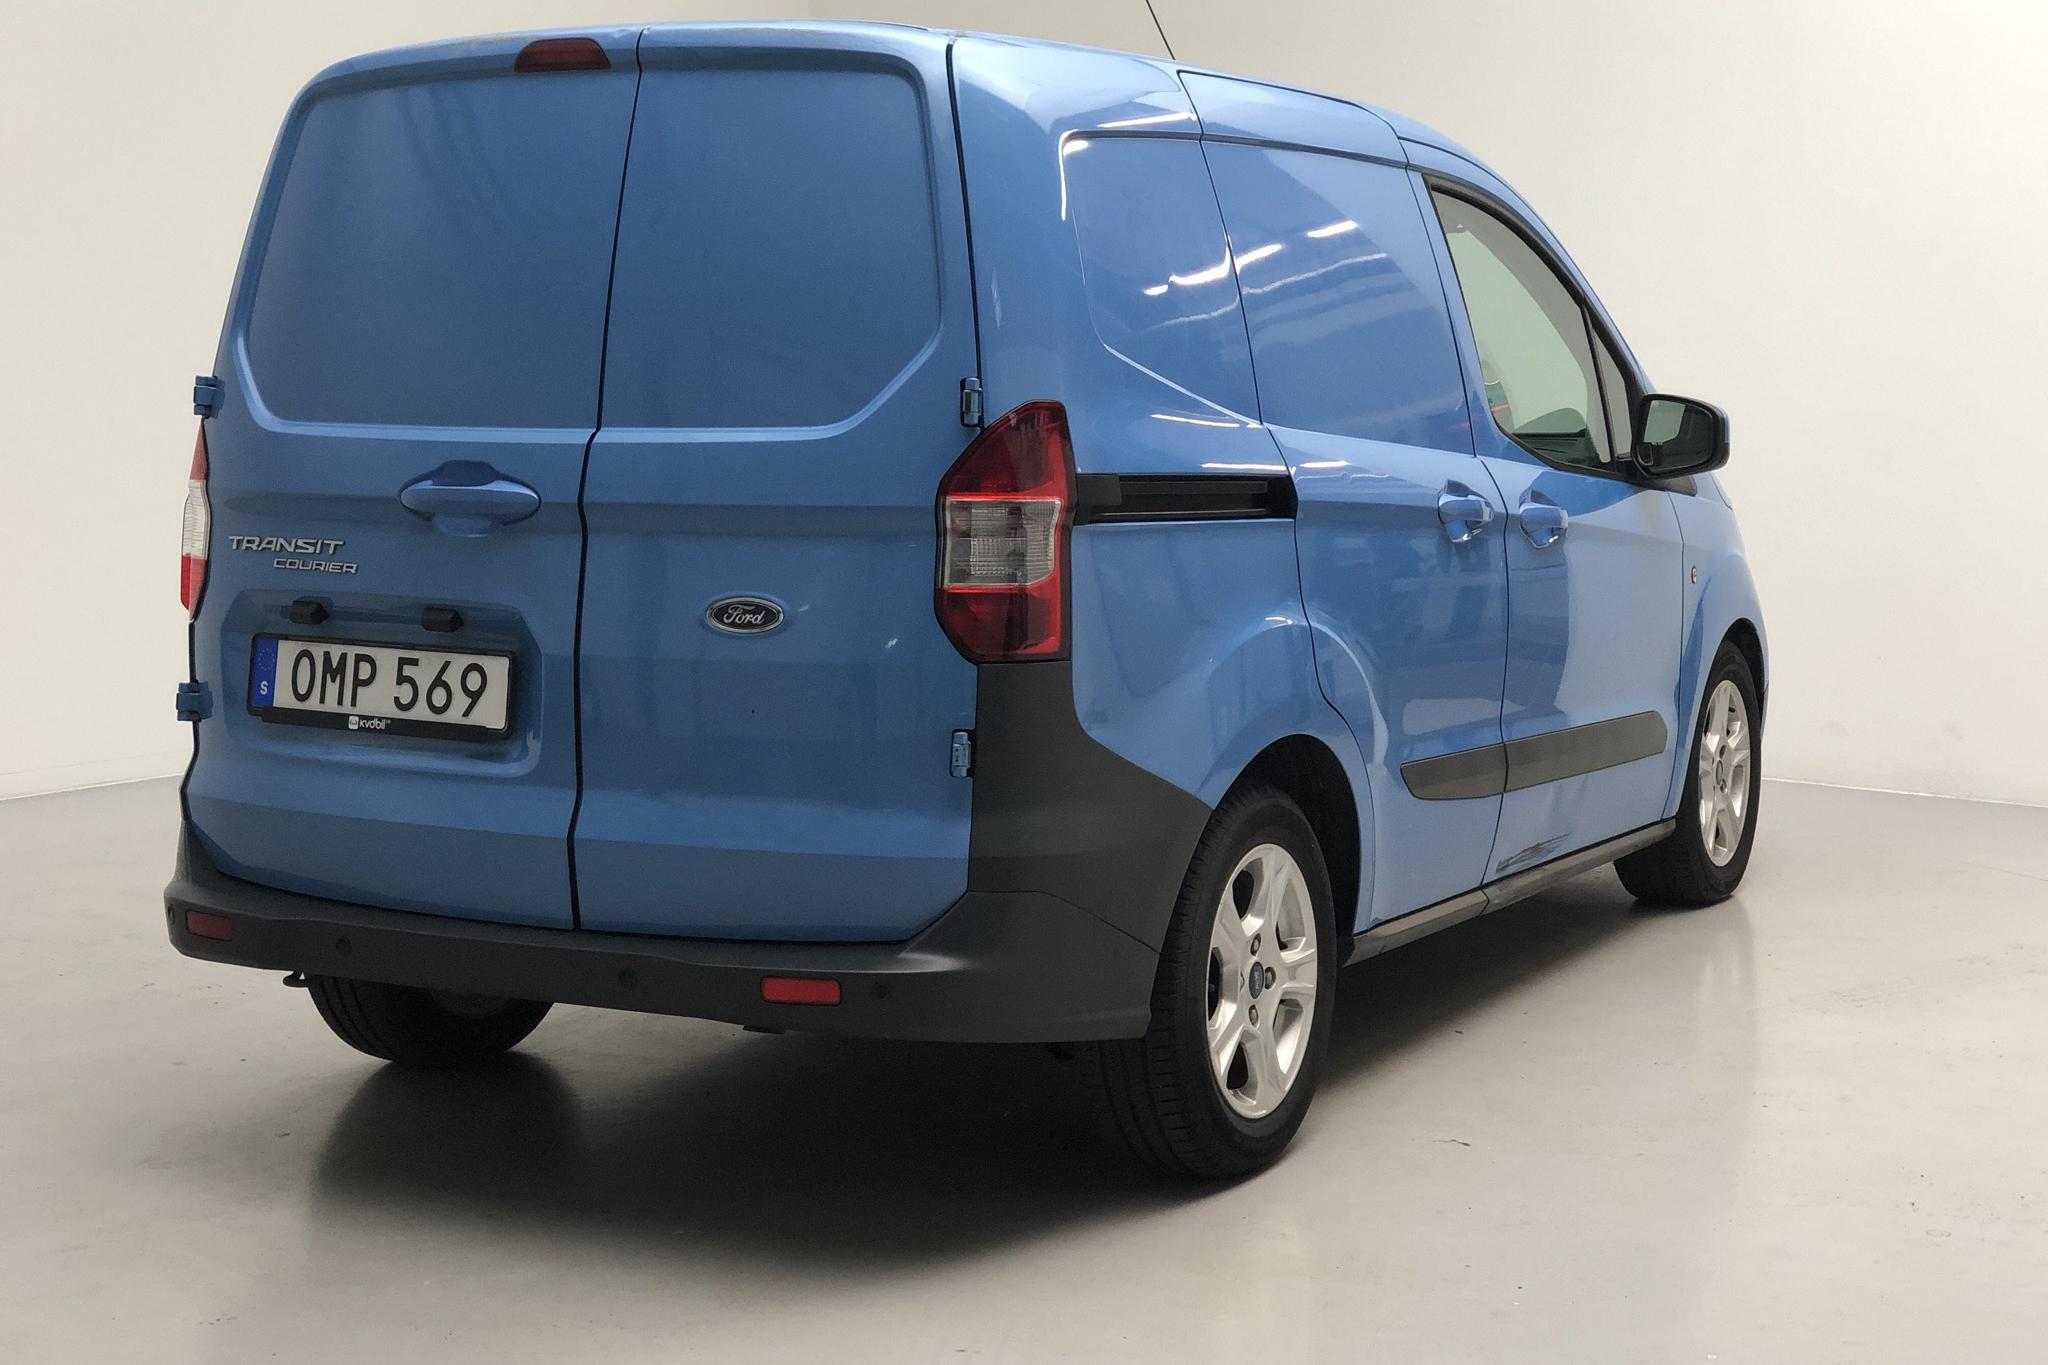 Ford Transit Courier 1.5 TDCI (75hk) - 120 020 km - Manual - blue - 2014